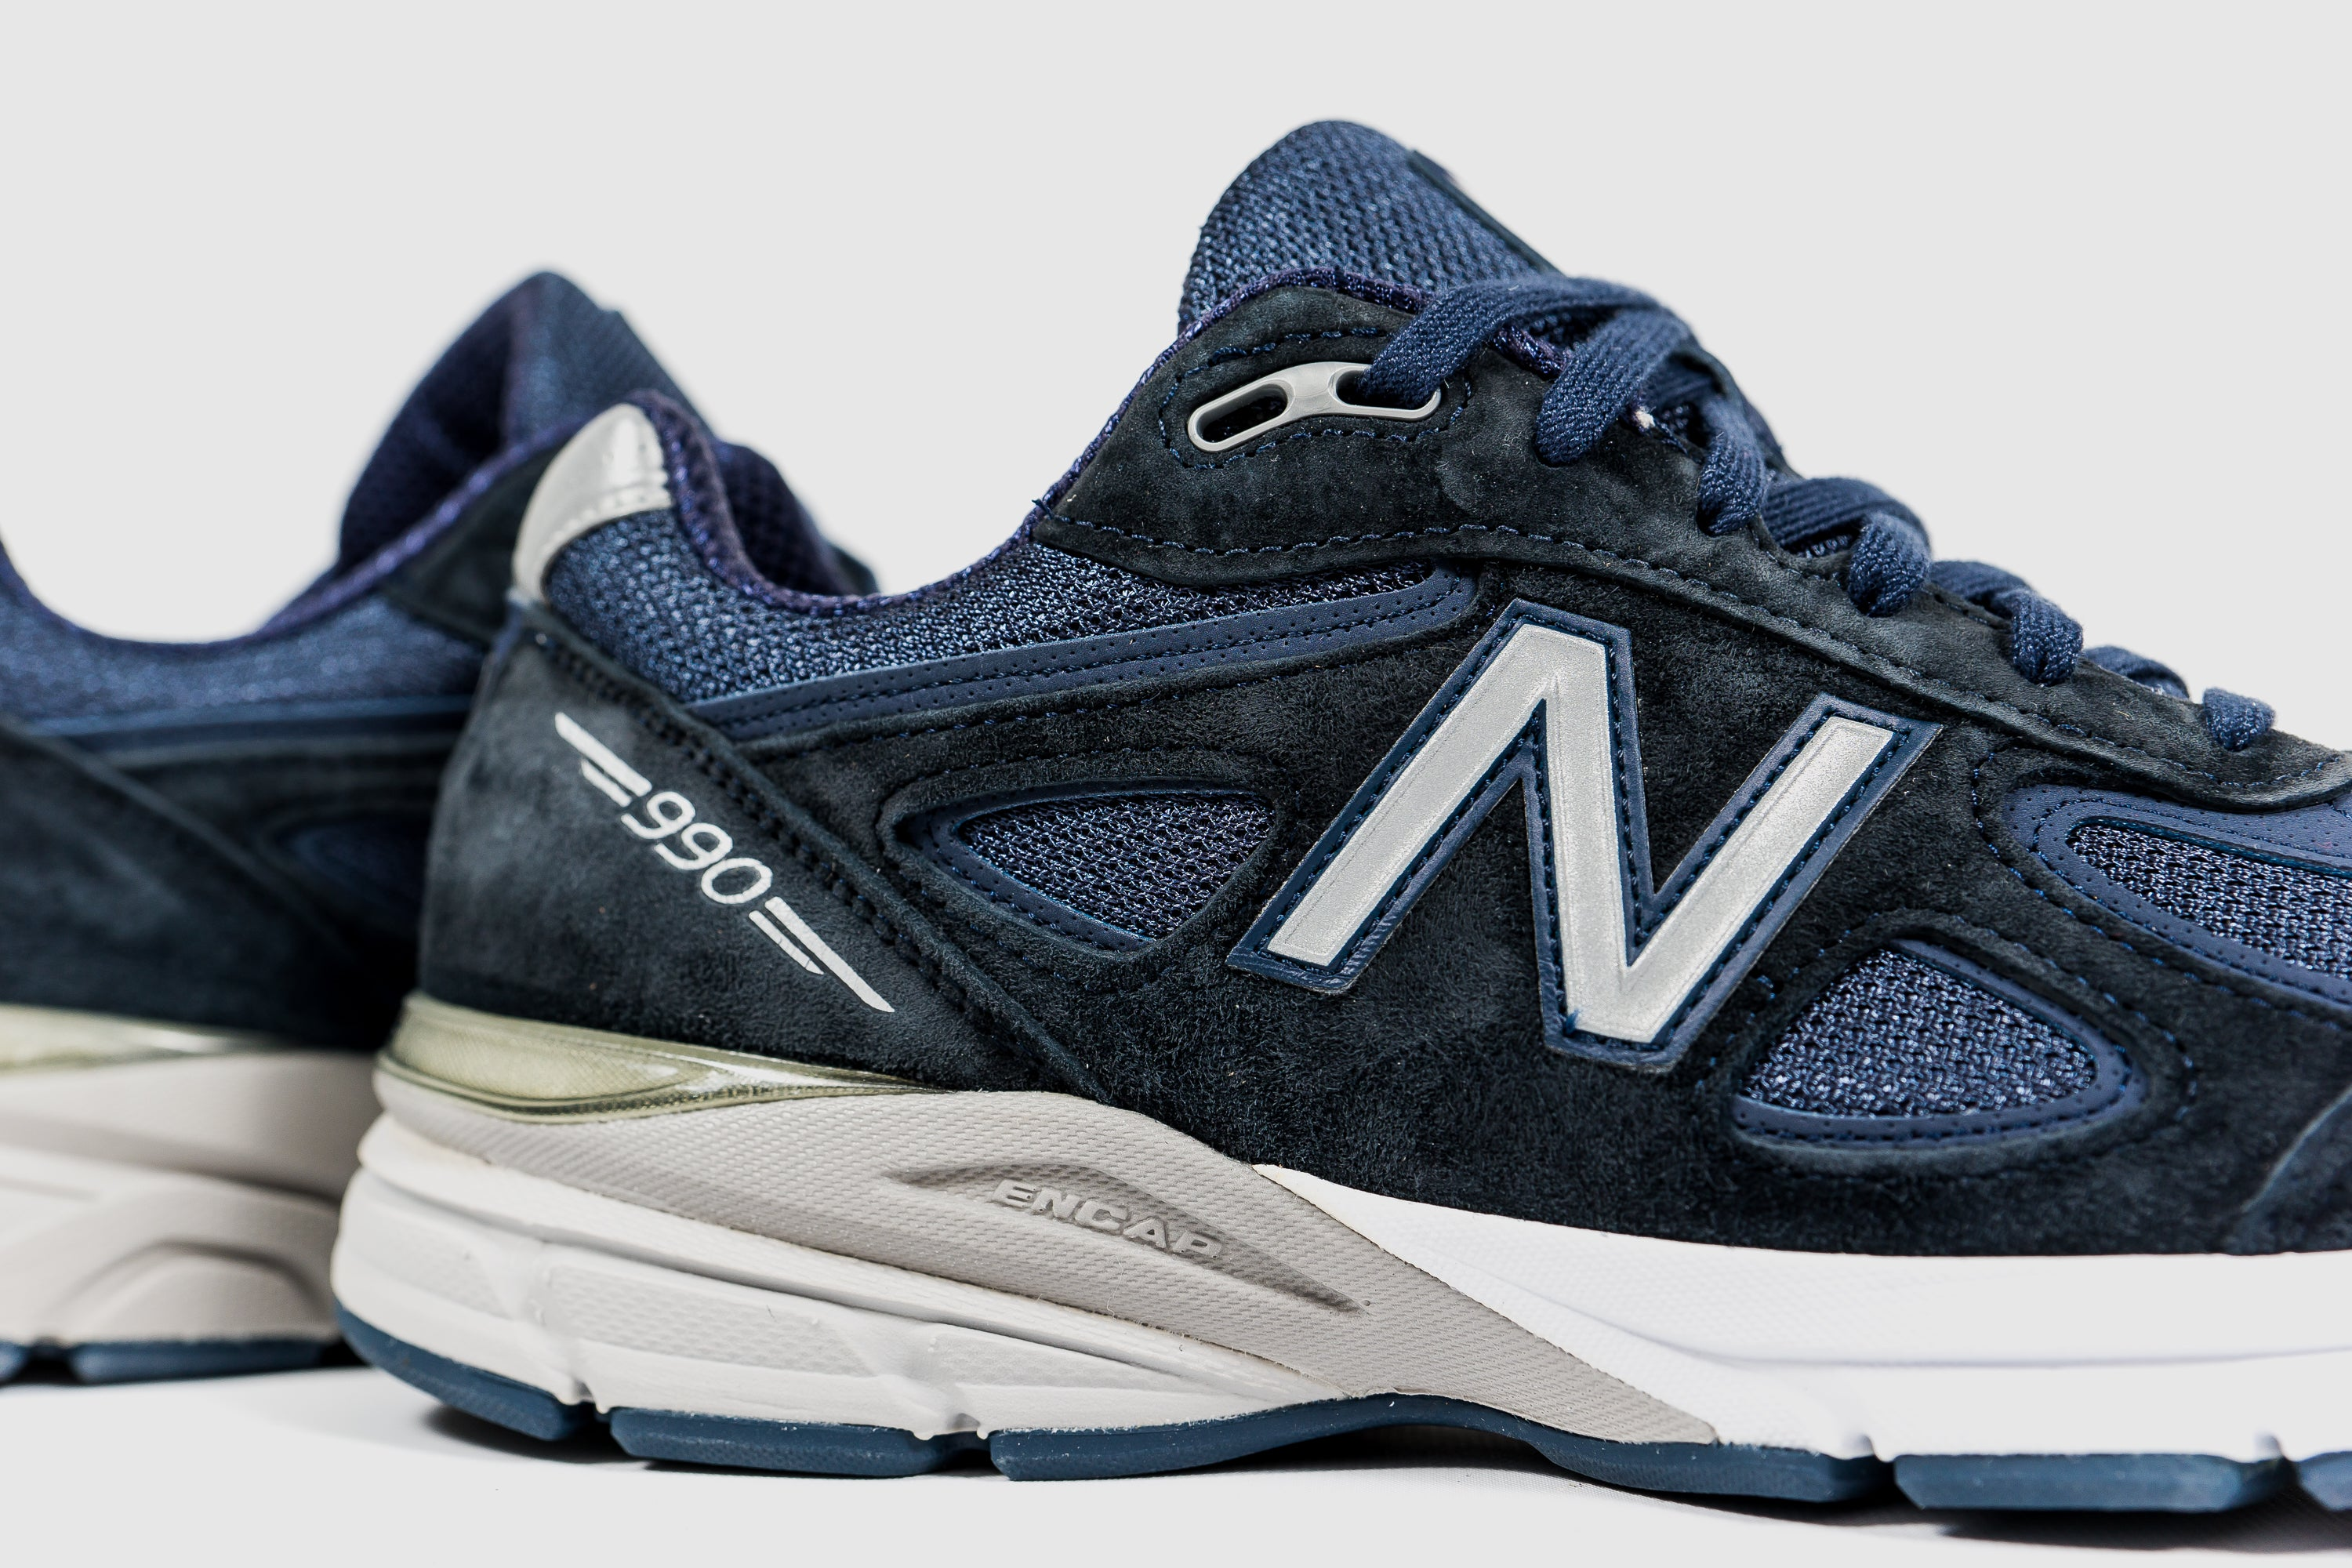 NEW BALANCE M990NV4 MADE IN THE USA